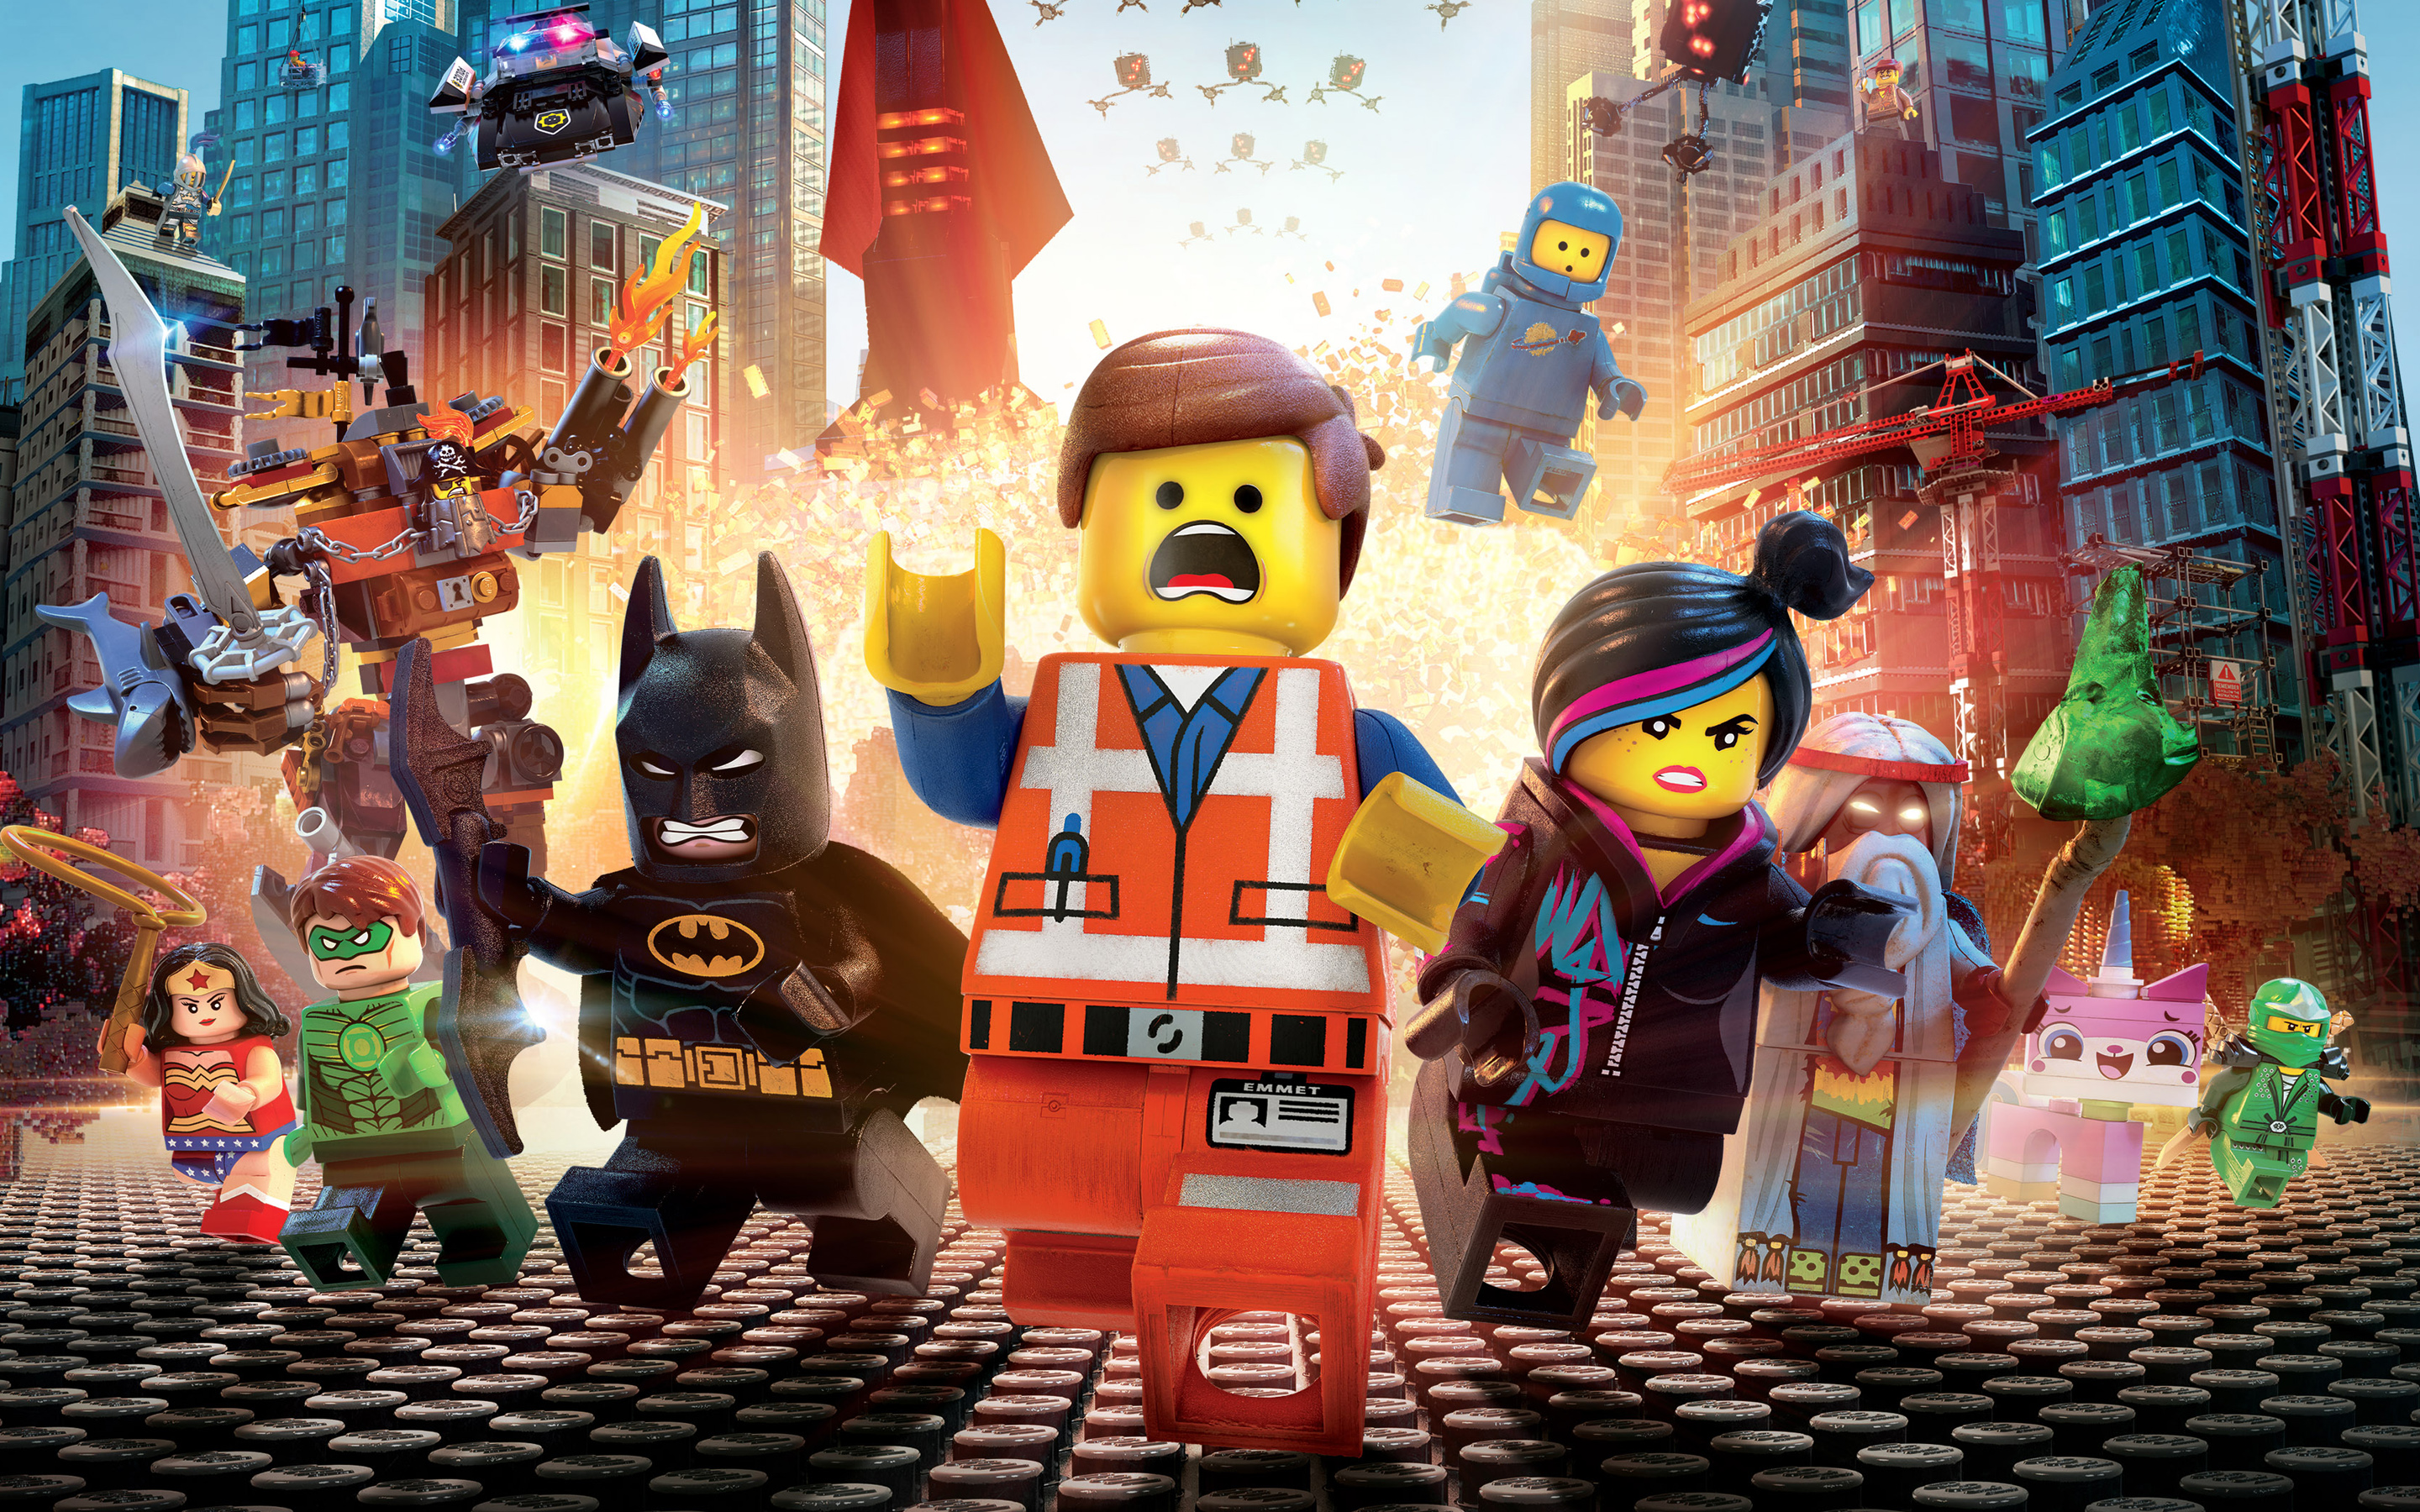 Exclusive Win Two Tickets To The LA Premiere Of The Lego Movie Fandango